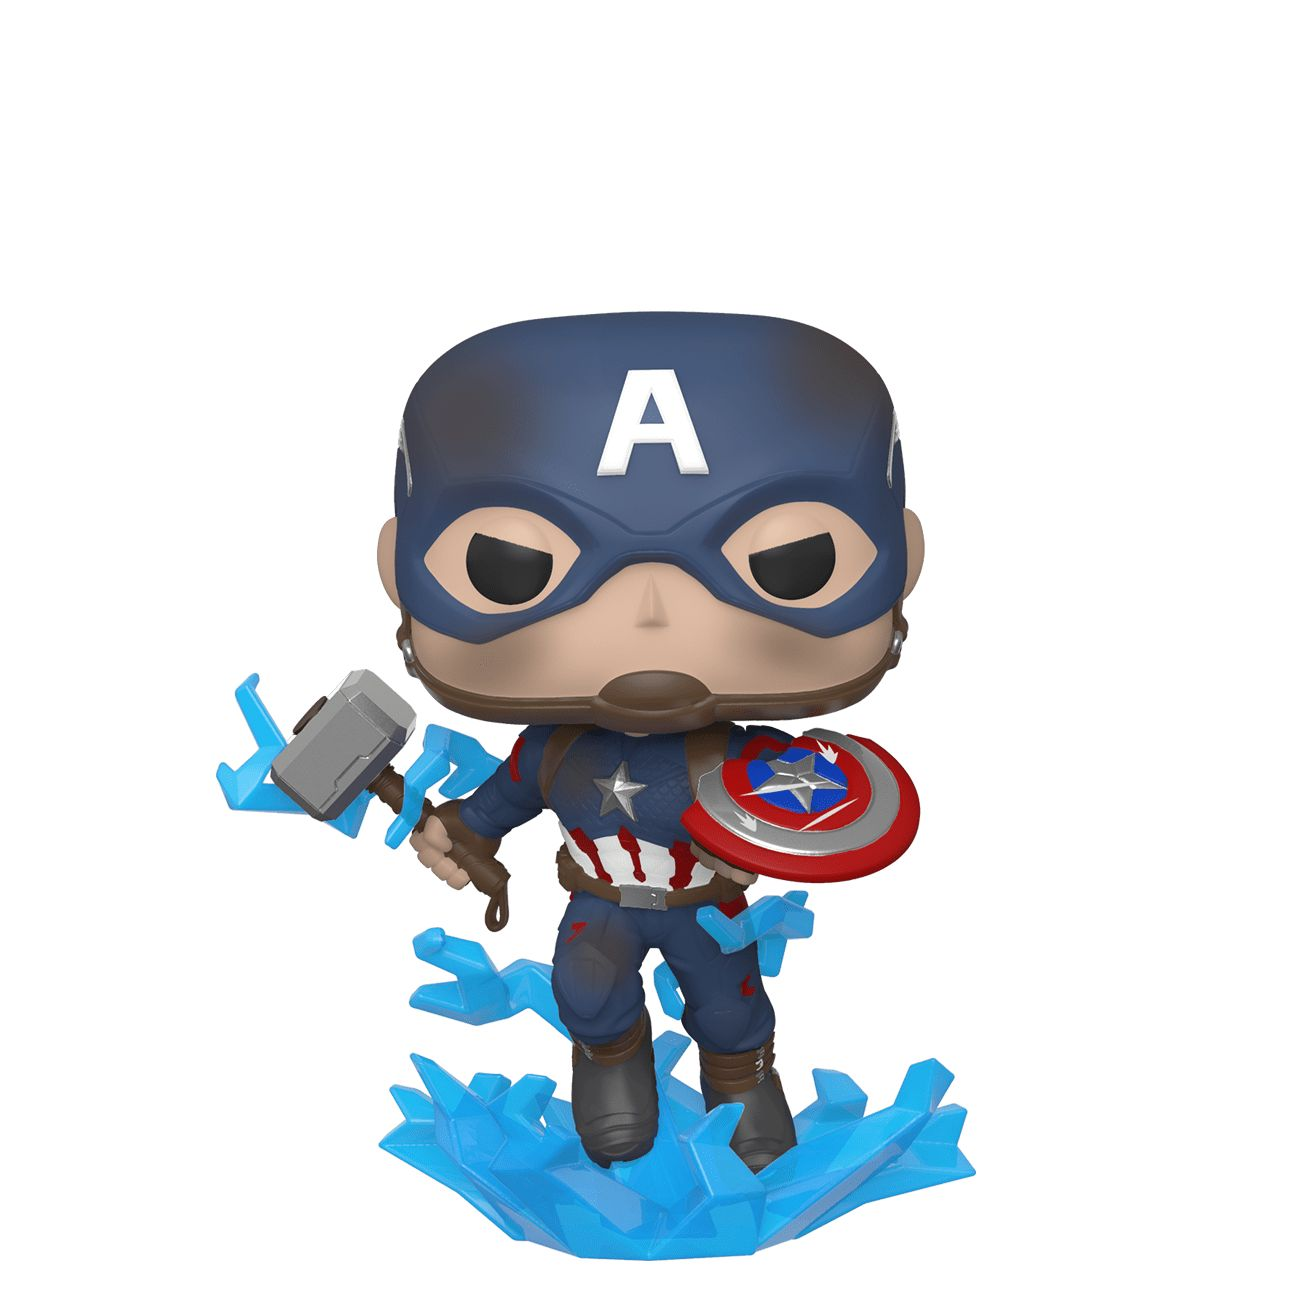 """""""Avengers: Endgame"""" Gets a New Wave of Funko Pop Figures"""